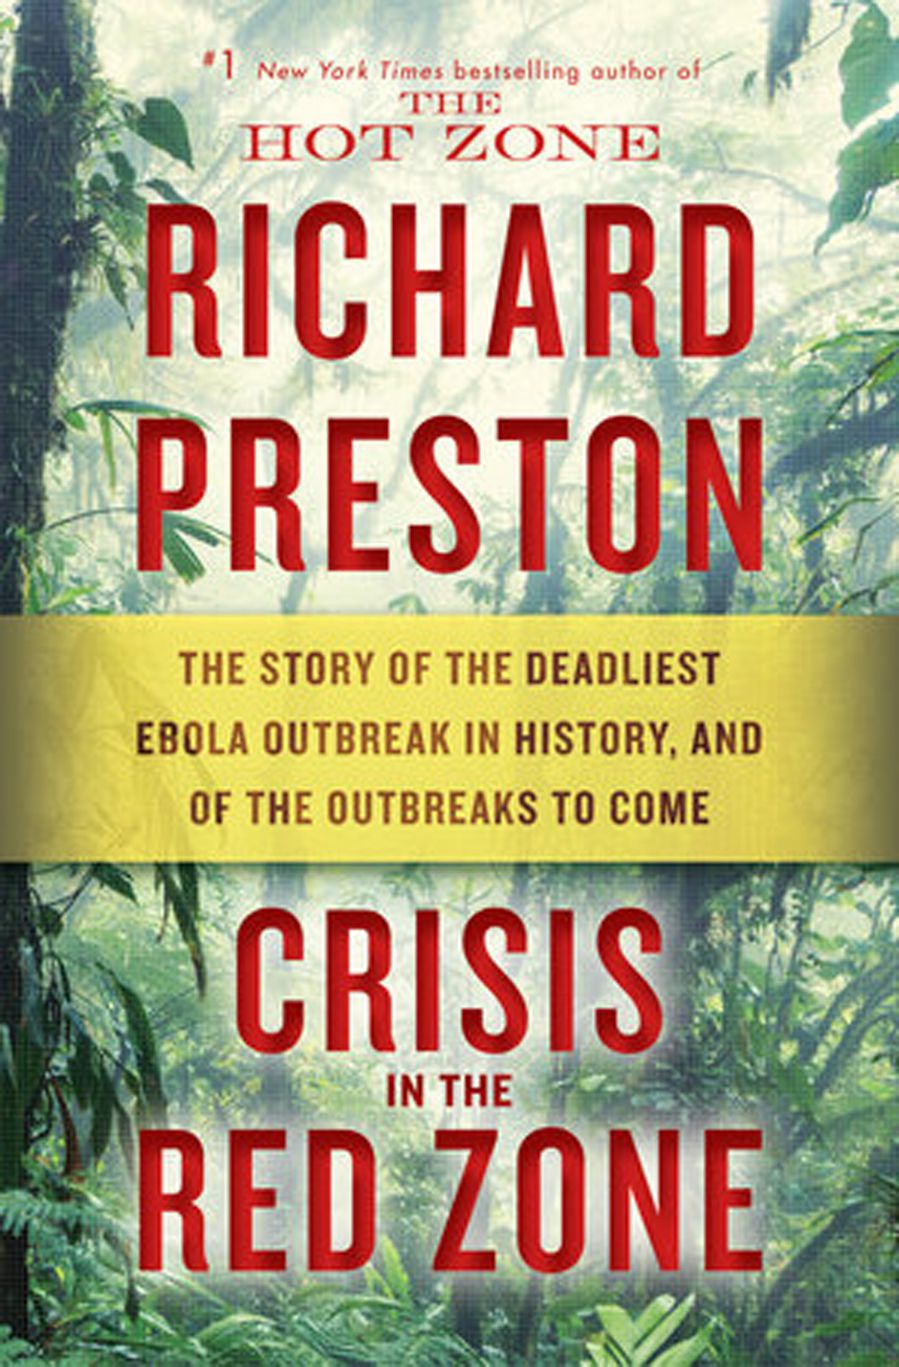 The cover of CRISIS IN THE RED ZONE: THE STORY OF THE DEADLIEST EBOLA OUTBREAK IN HISTORY, AND OF THE OUTBREAKS TO COME